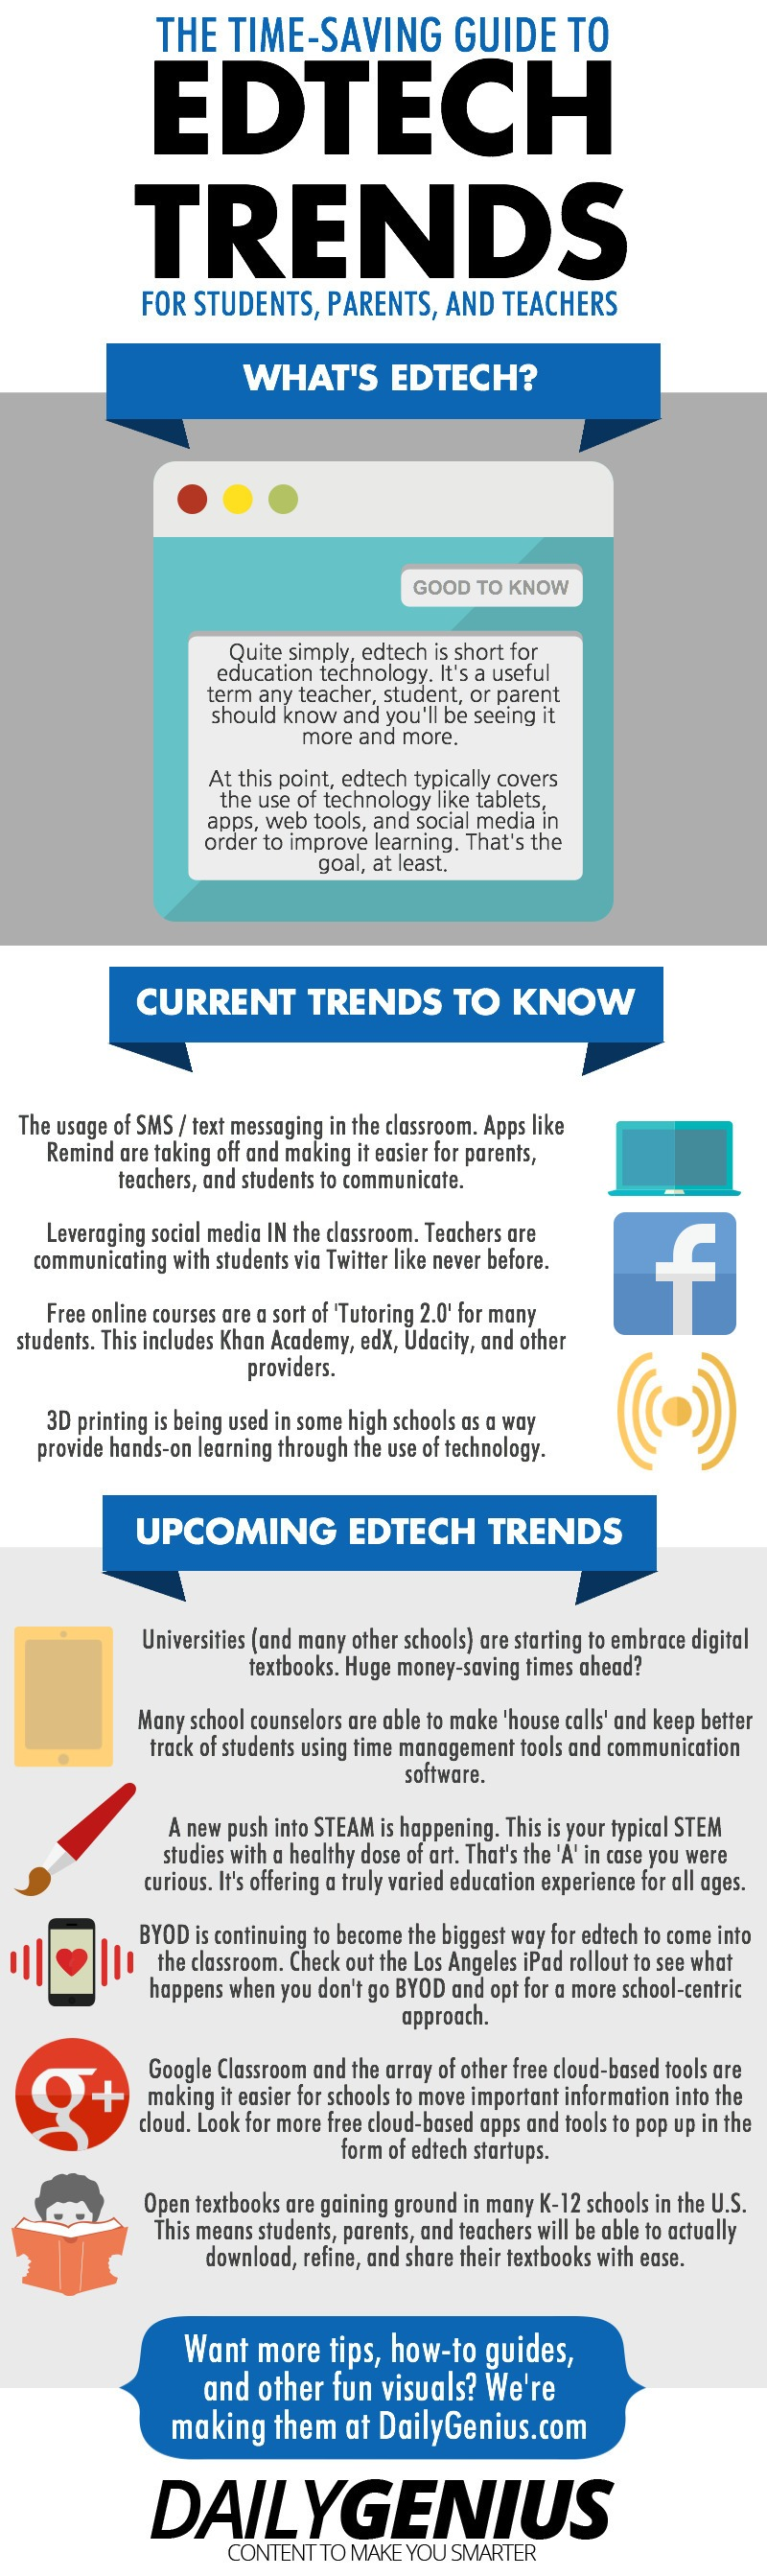 10 Current and Future Edtech Trends Infographic - e-Learning Infographics